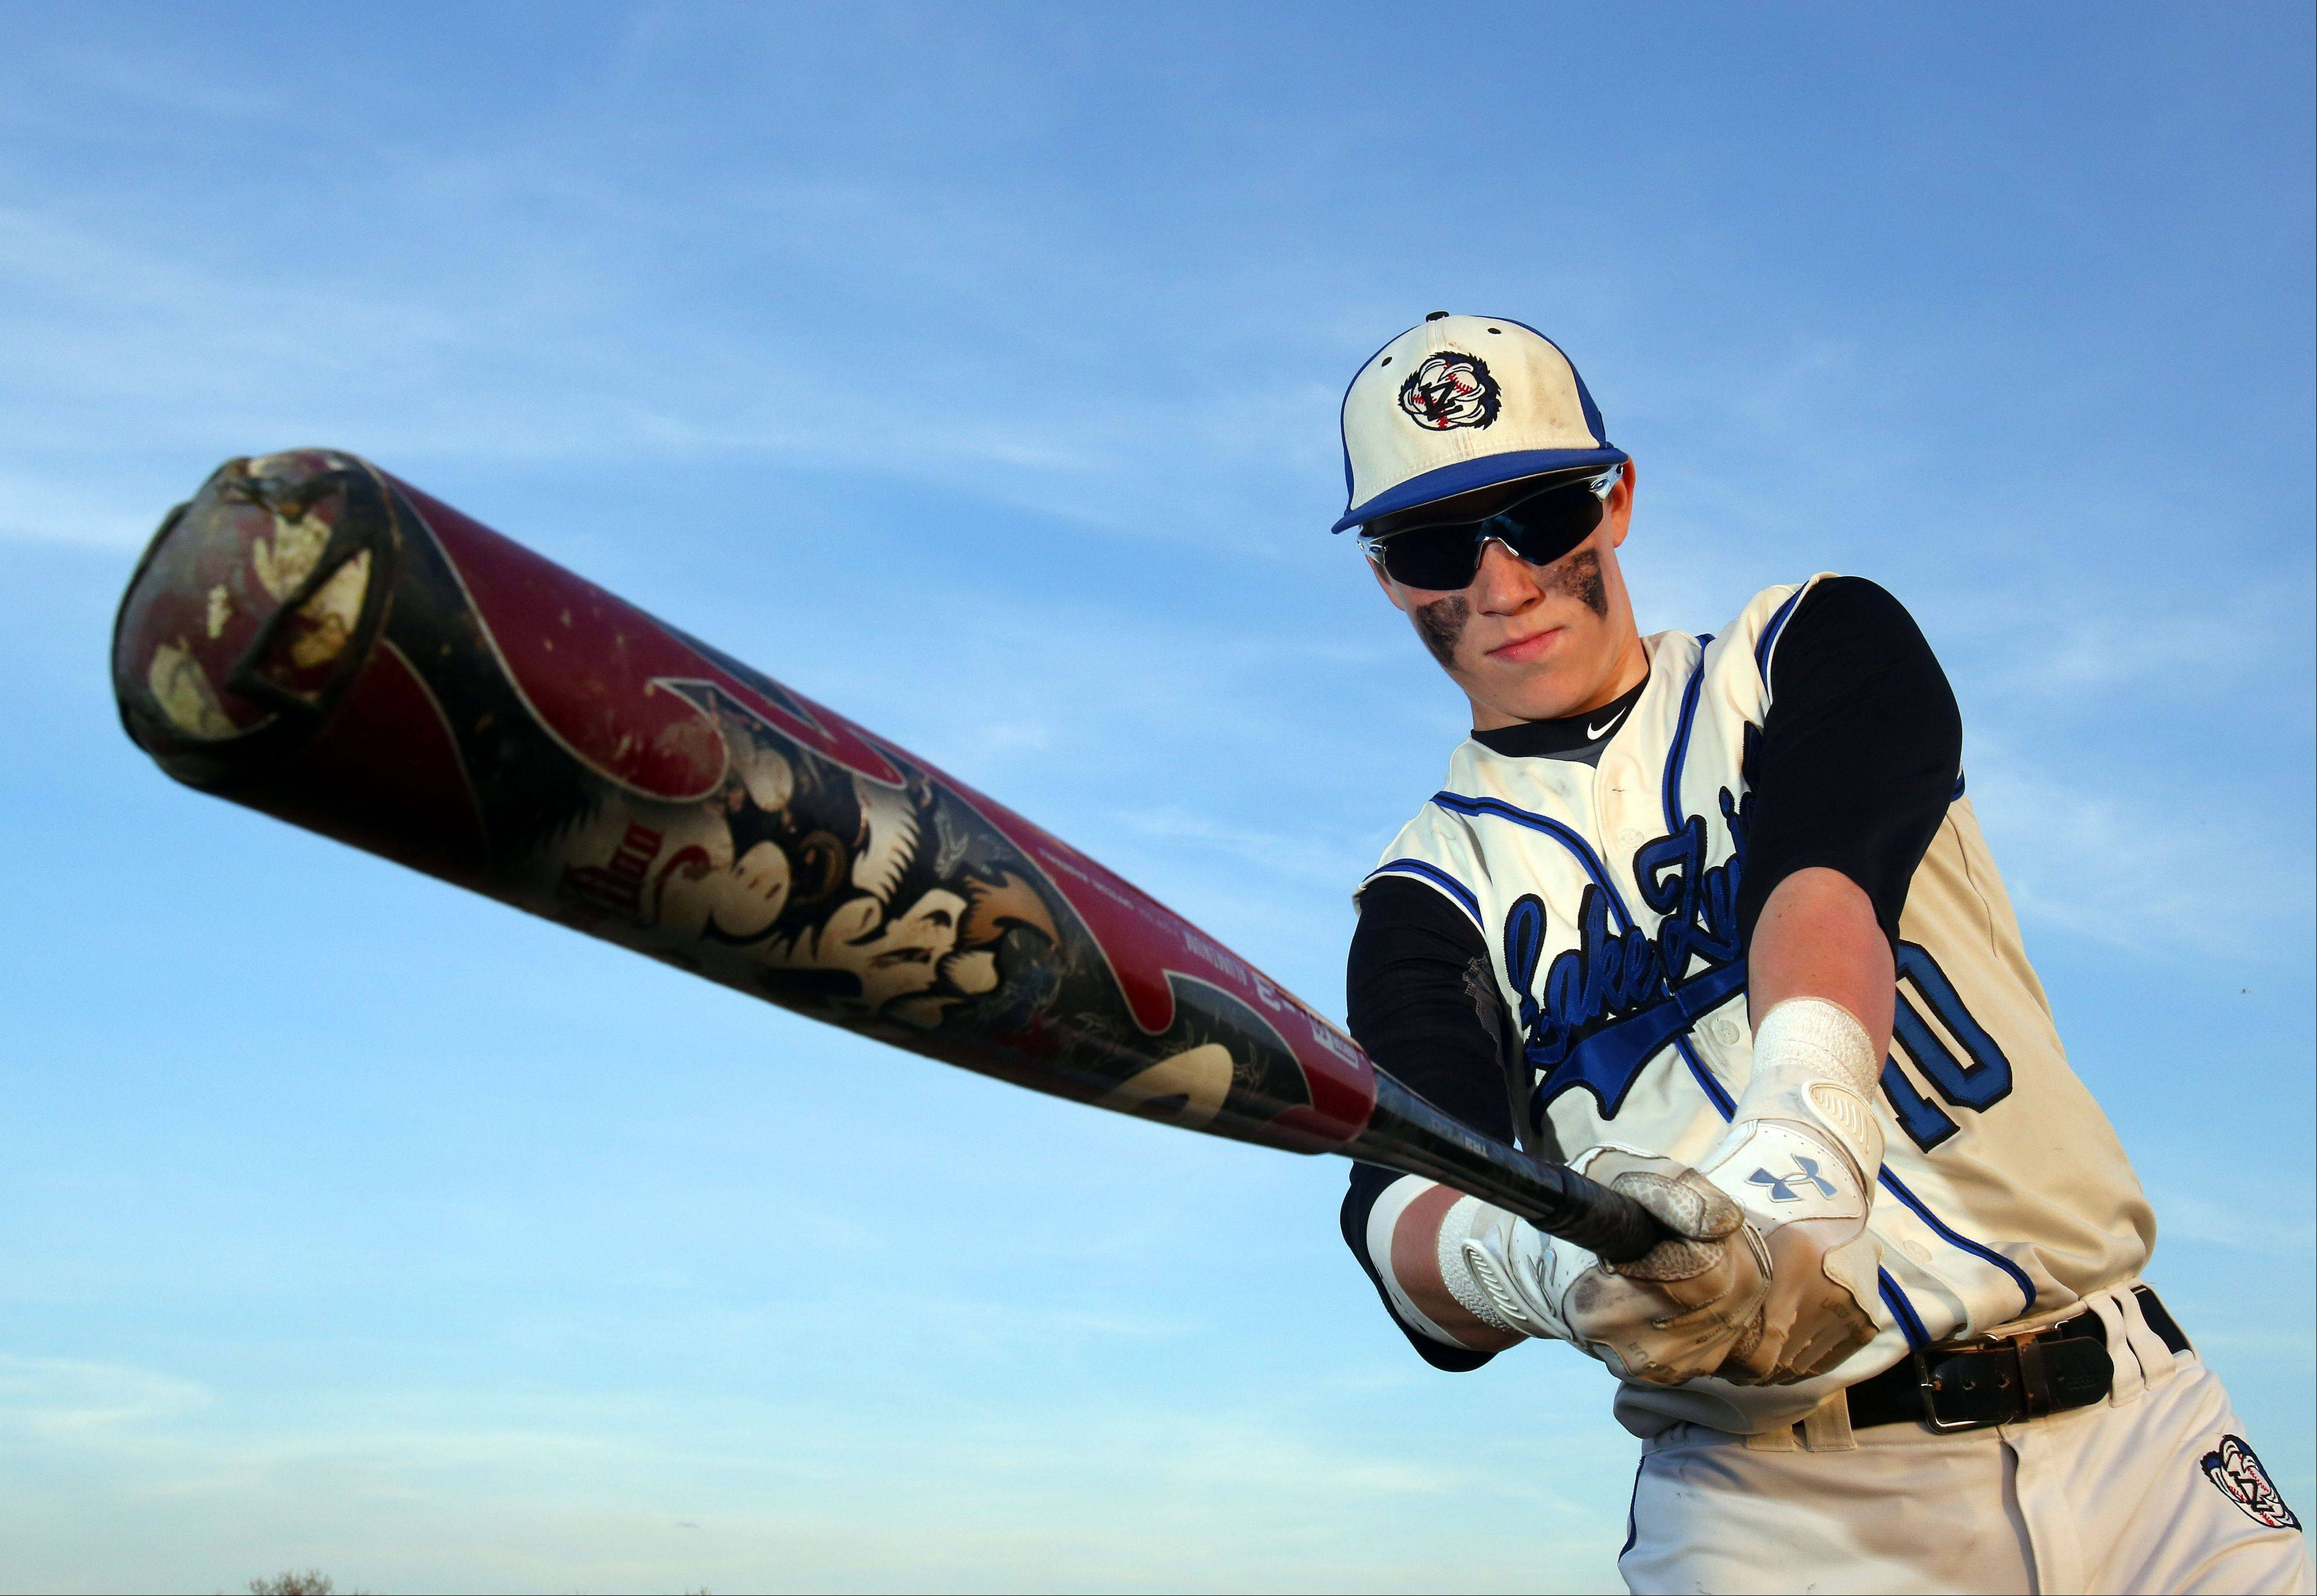 Lake Zurich slugger Nick Jones hit 6 home runs last week alone.